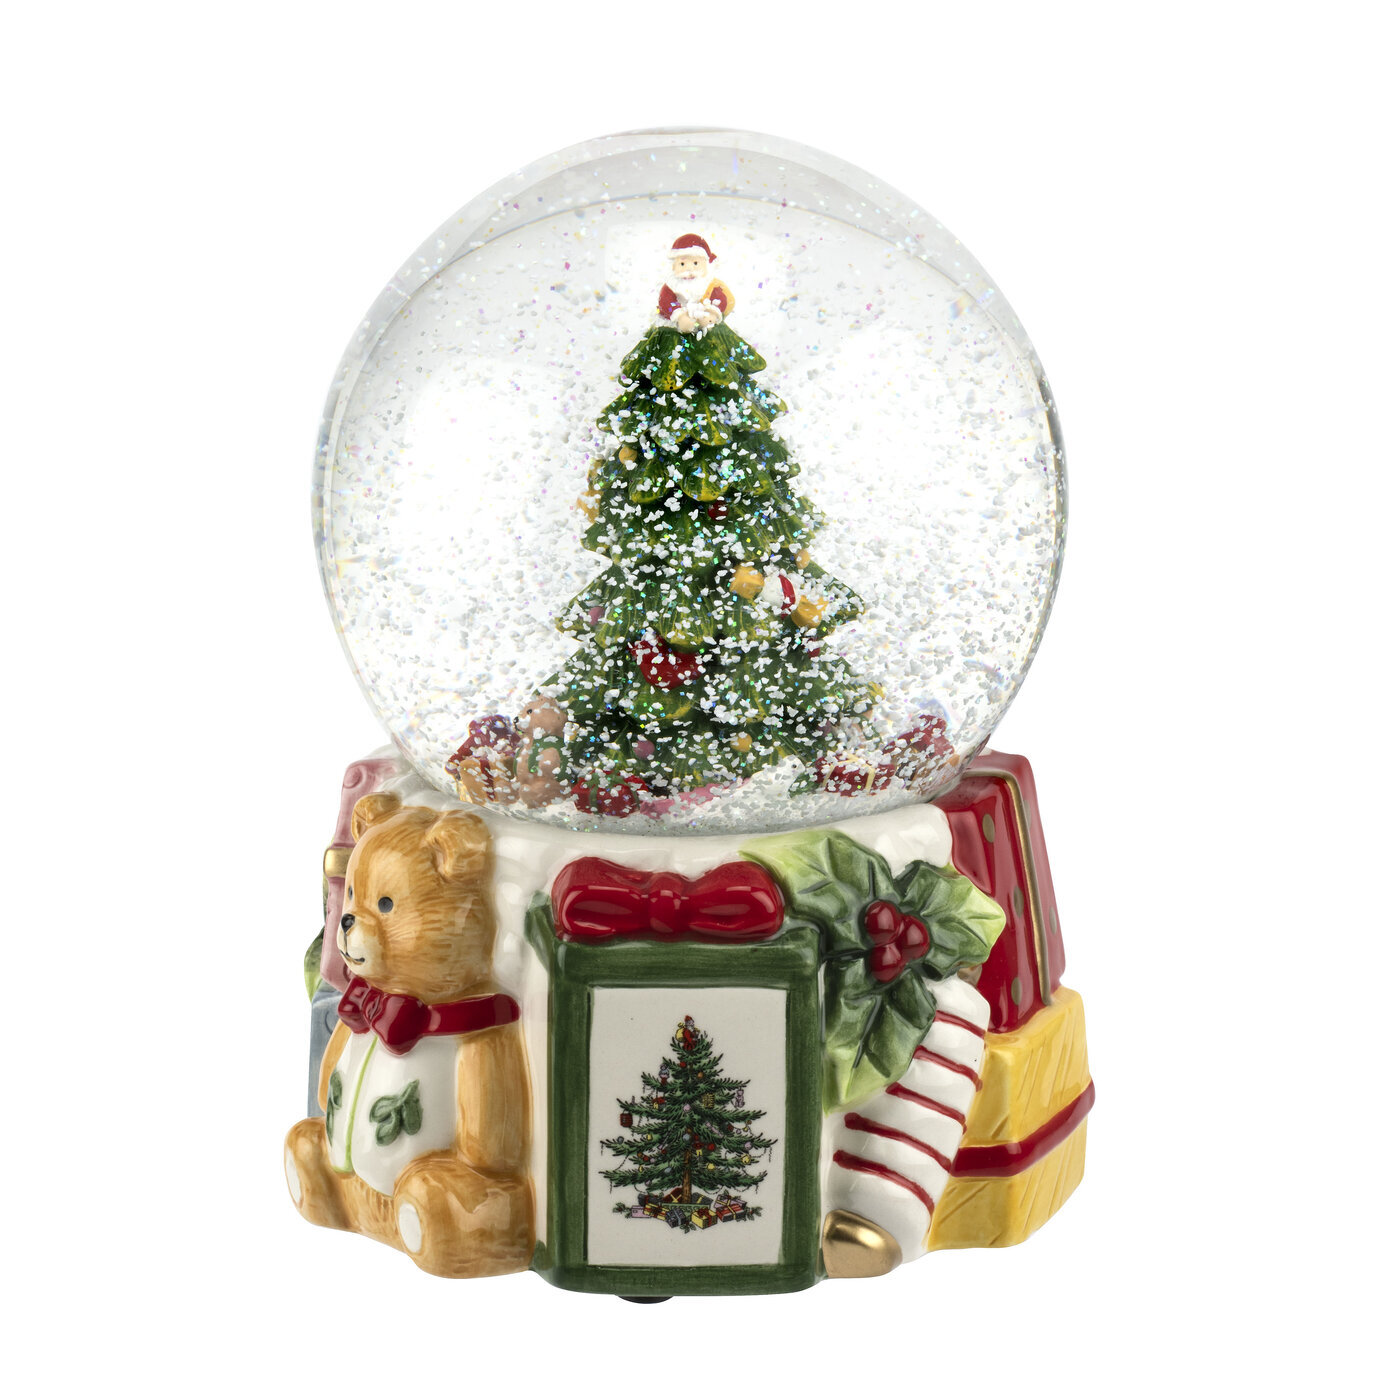 Spode Christmas Tree Musical Snow Globe Reviews Wayfair